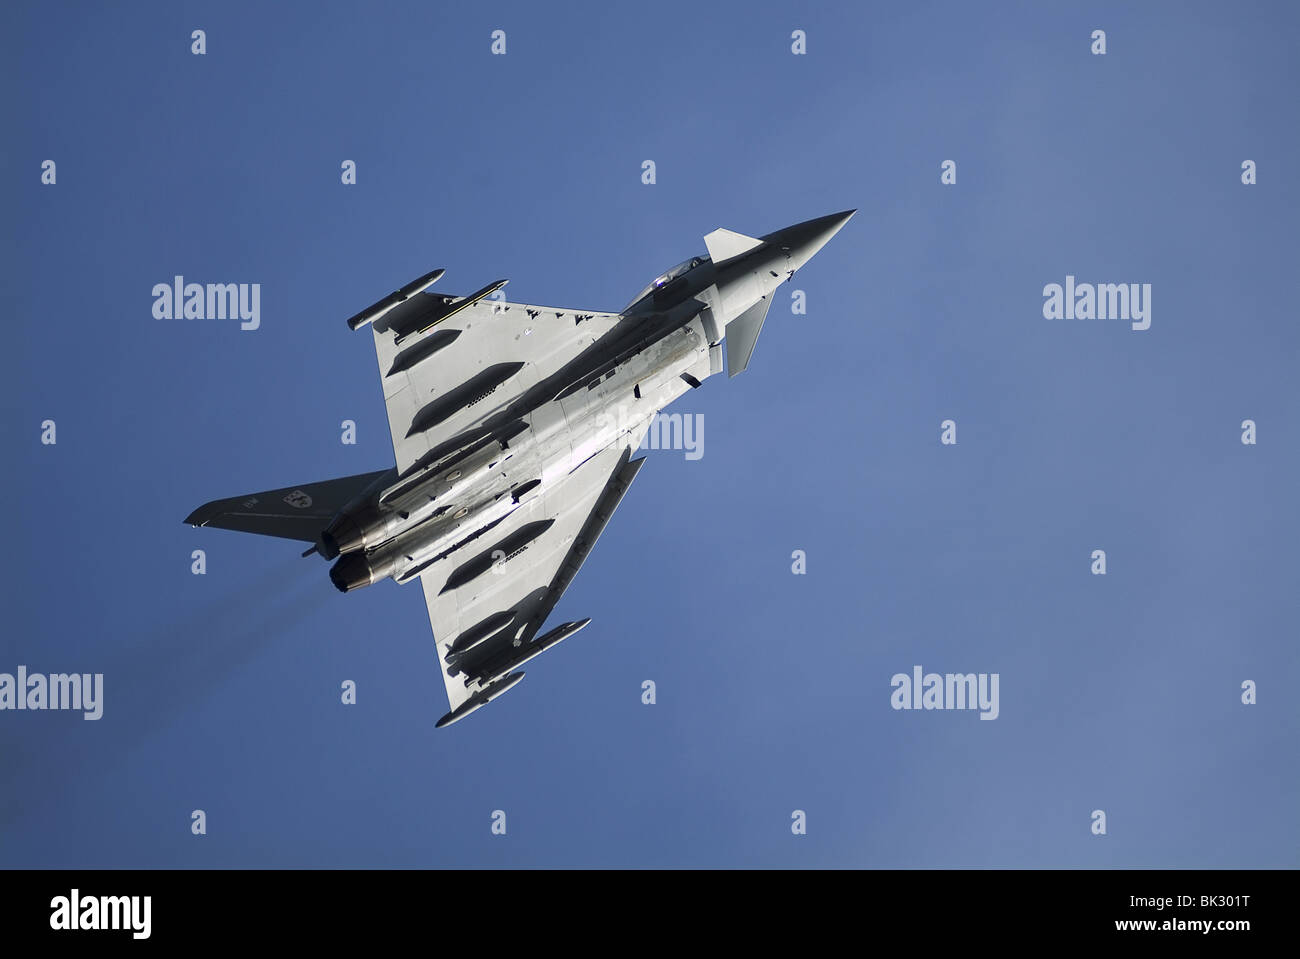 Typhoon (Eurofighter), a highly capable and extremely agile aircraft is powered by twin turbofans to Mach 2 at 65,000ft. - Stock Image